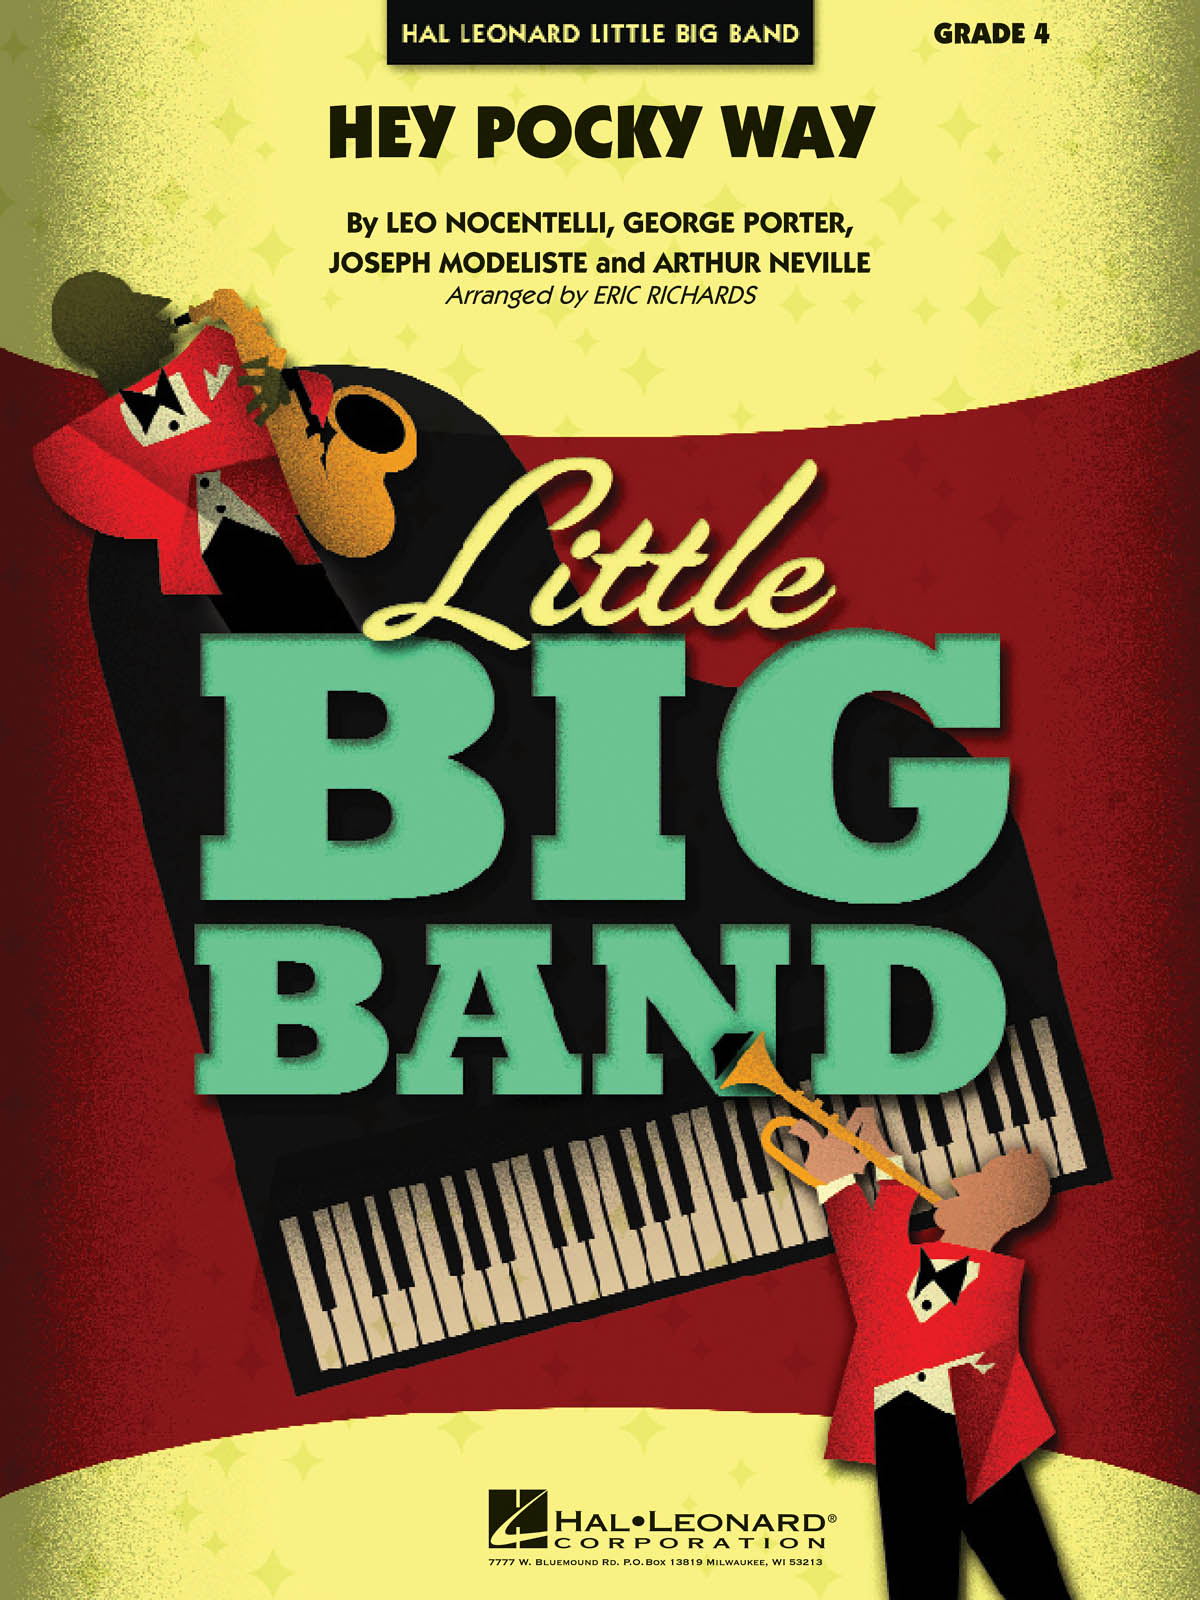 Hey Pocky Way: Little Big Band